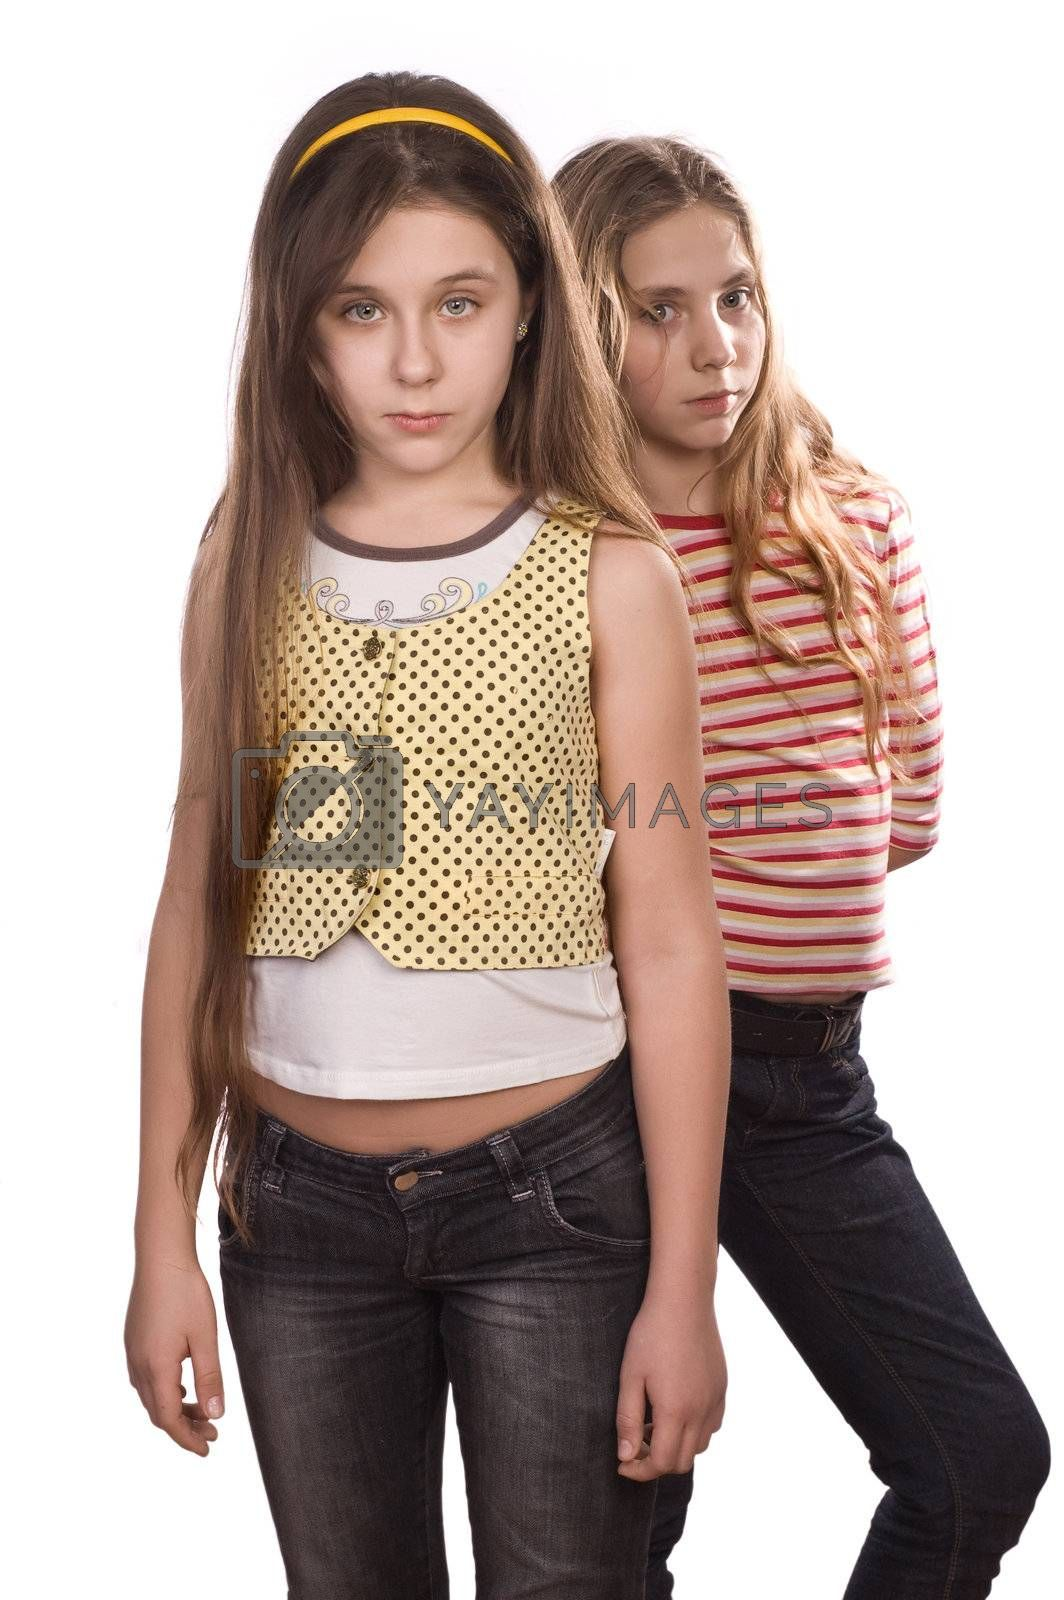 Royalty free image of Two teenage girls standing isolated on white by iribo